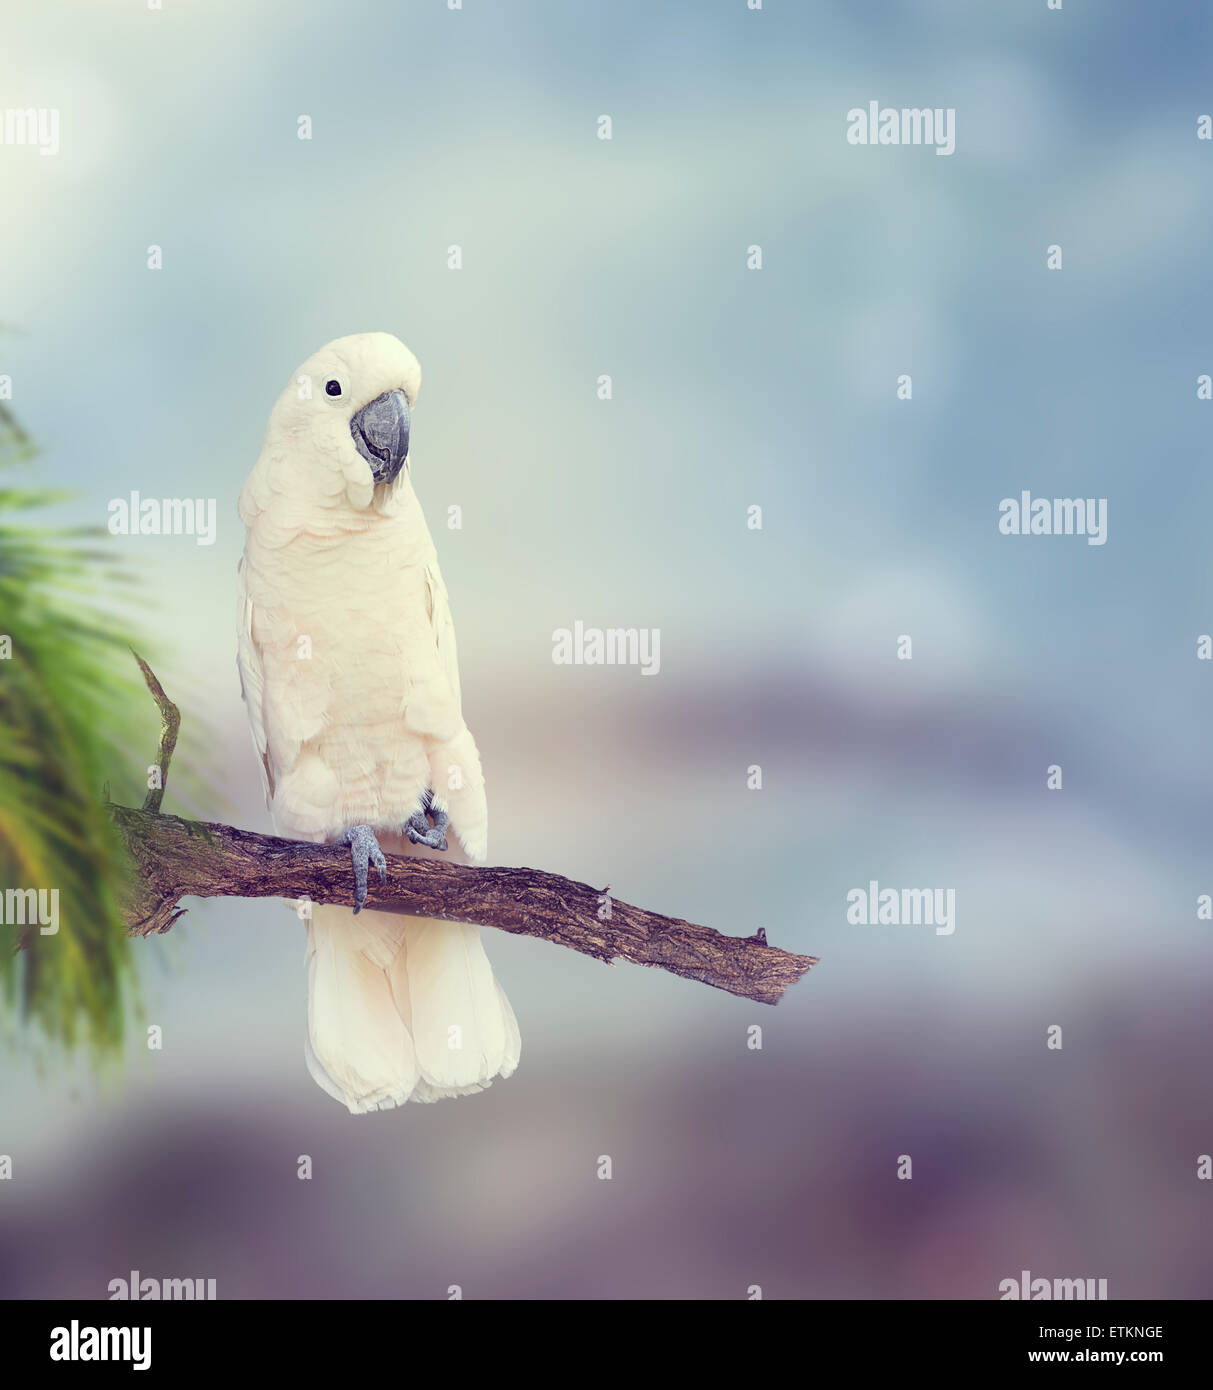 White Parrot Perches on a Branch - Stock Image